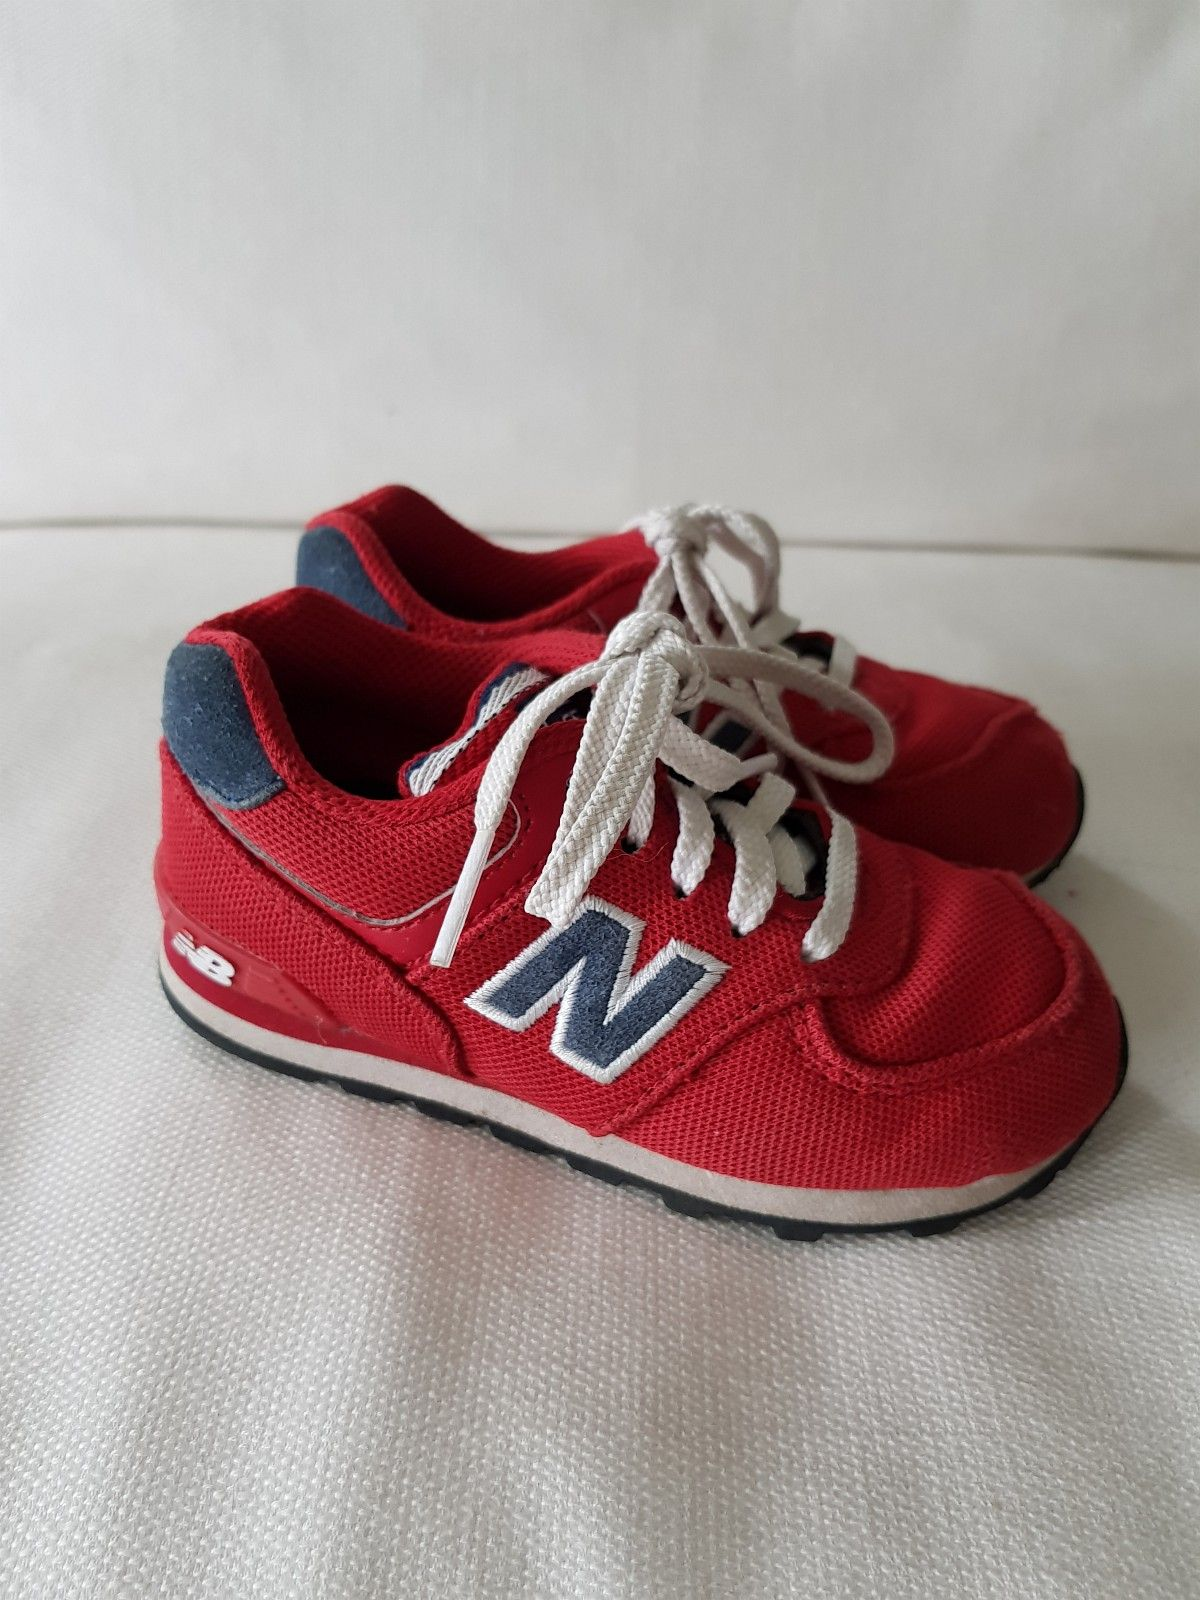 150fac6d New Balance sko str. 25 | FINN.no